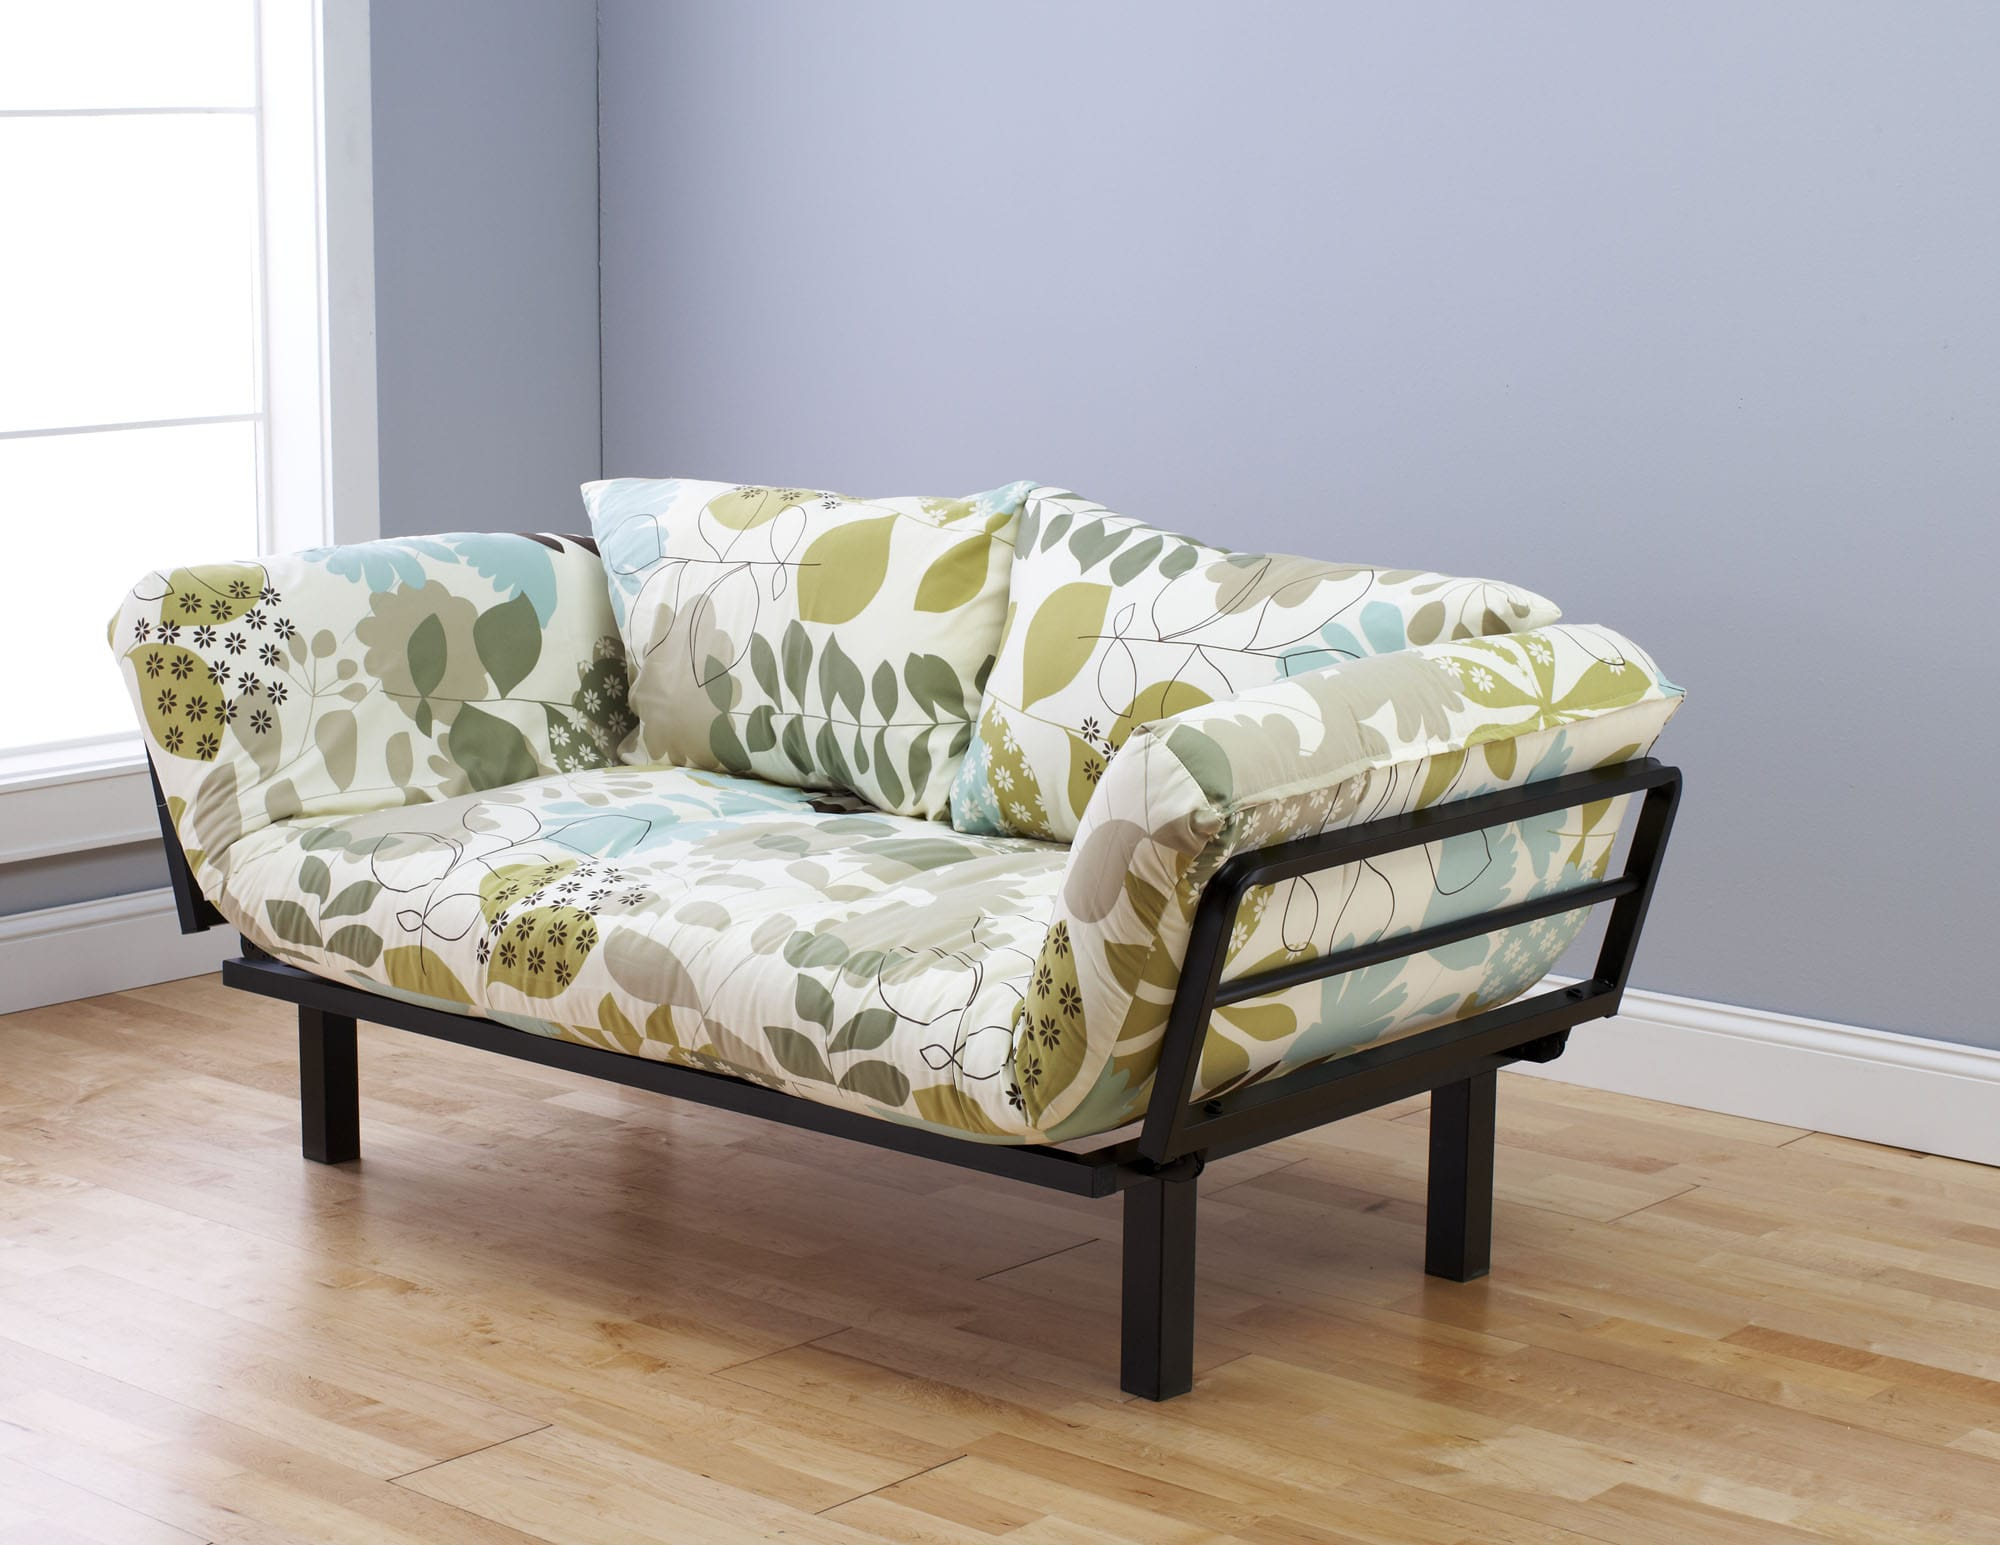 Spacely Futon Daybed Lounger With Mattress English Garden